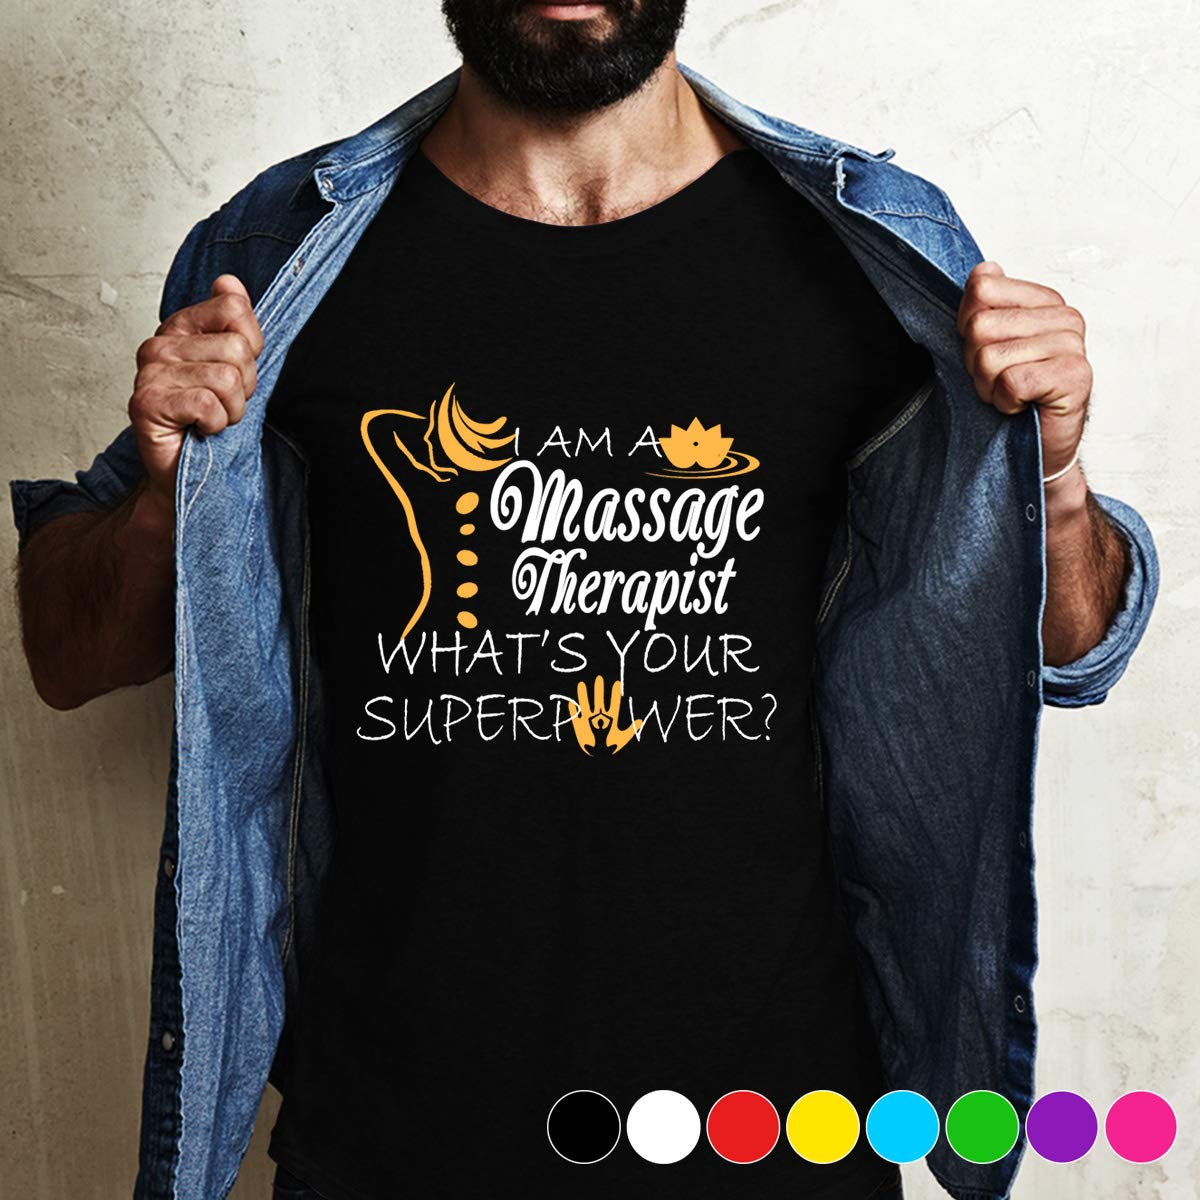 Therapist Im A Massage Therapist Whats Your Superpower Hes Been Seeing A Therapist To Try To Control His Anger T Shirt For Best Time